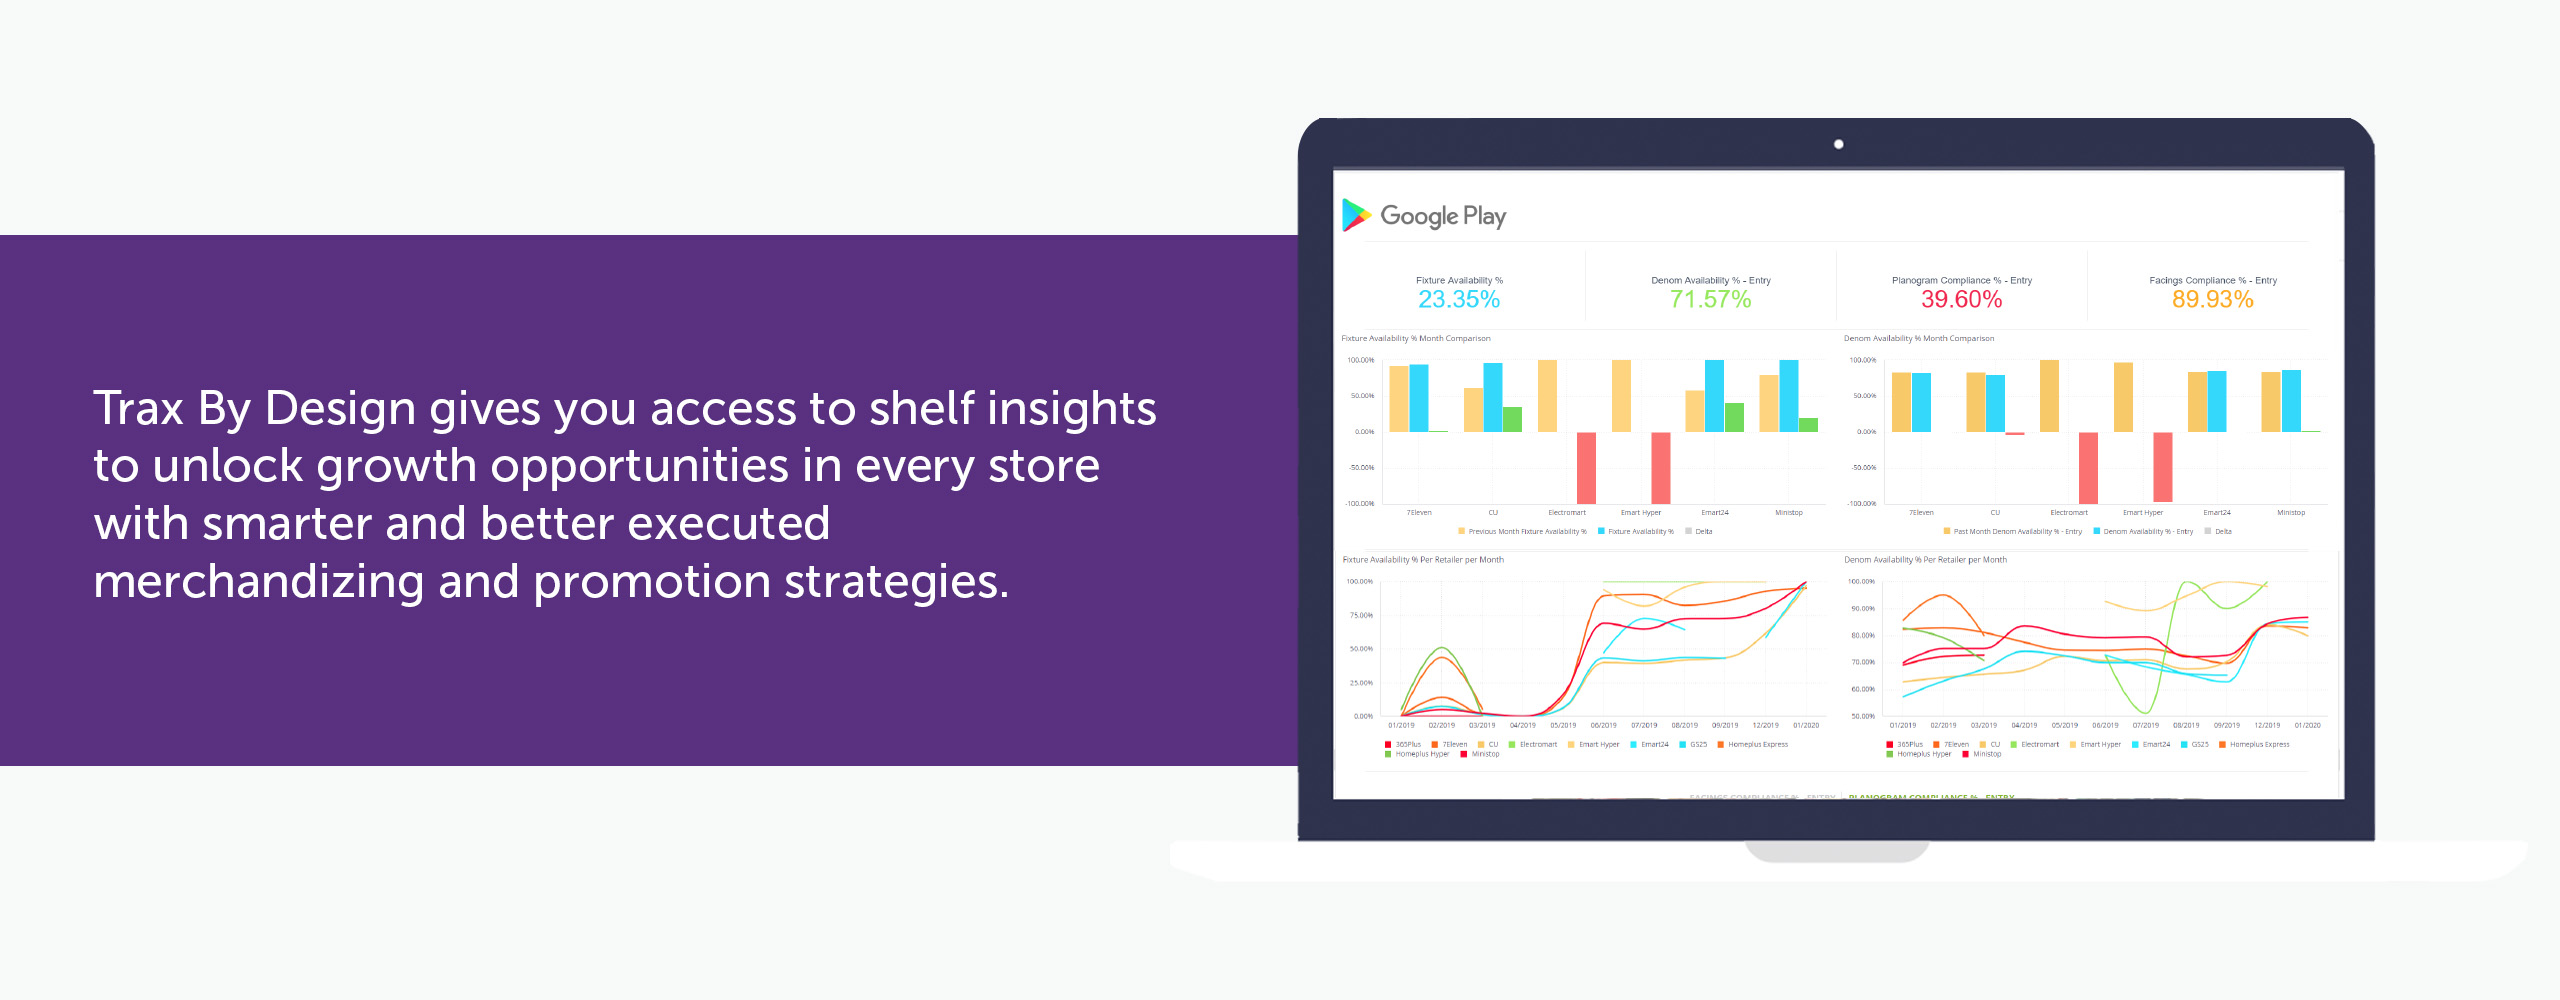 Trax By Design gives you access to shelf insights to unlock growth opportunities in every store with smarter and better executed merchandizing and promotion strategies.